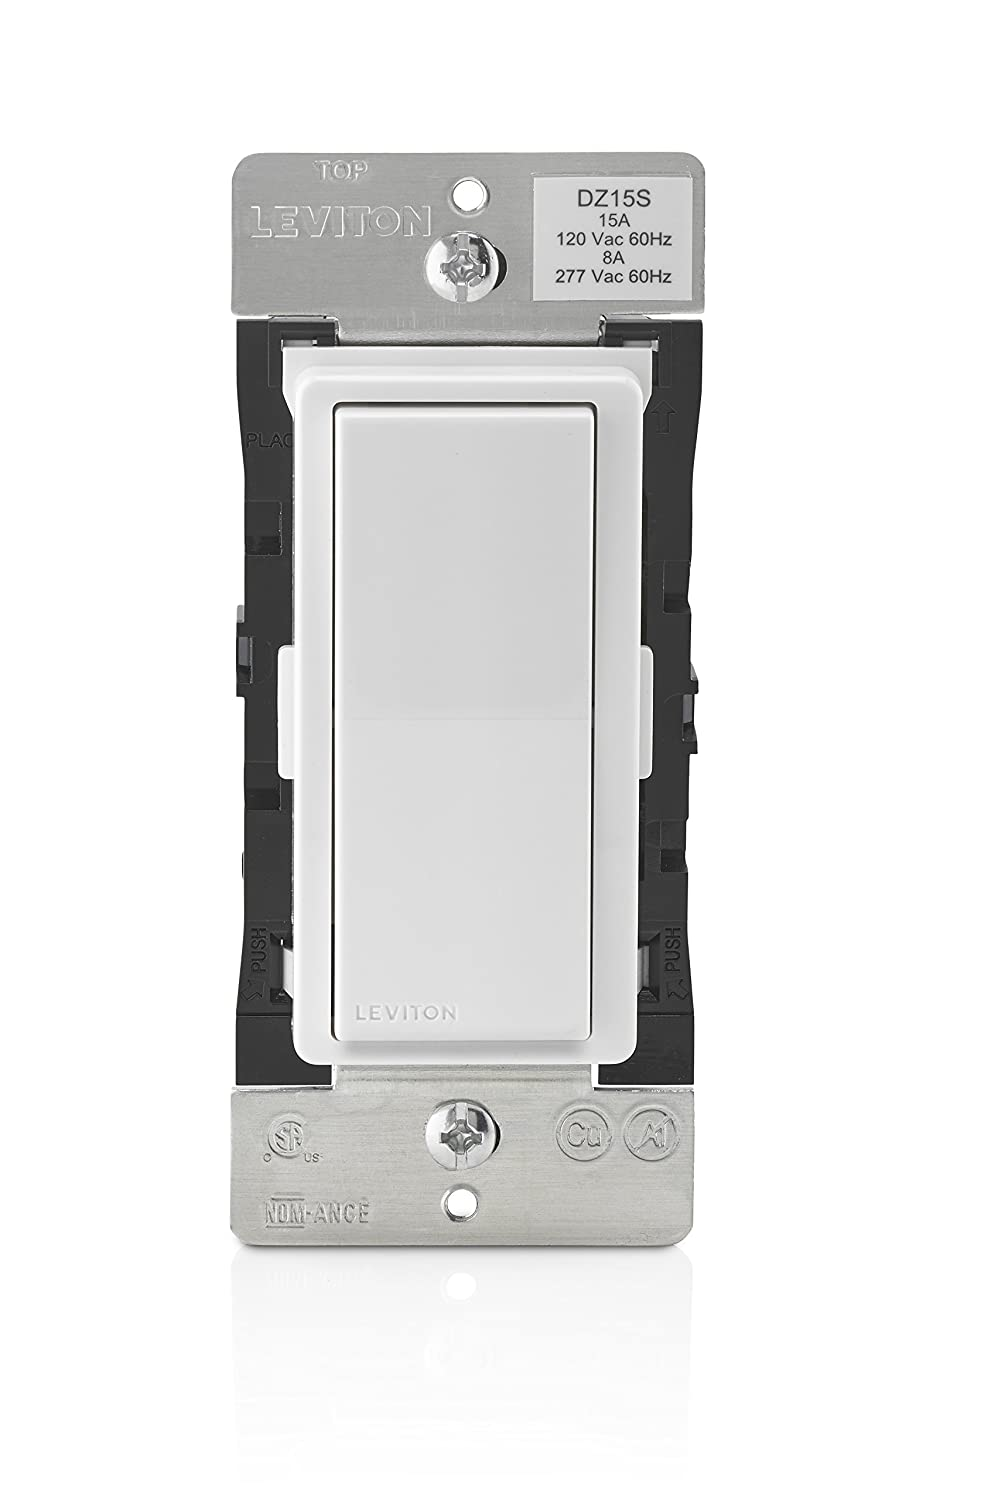 Leviton DZ15S-1BZ Decora Smart Switch with Z-Wave Plus Technology ...